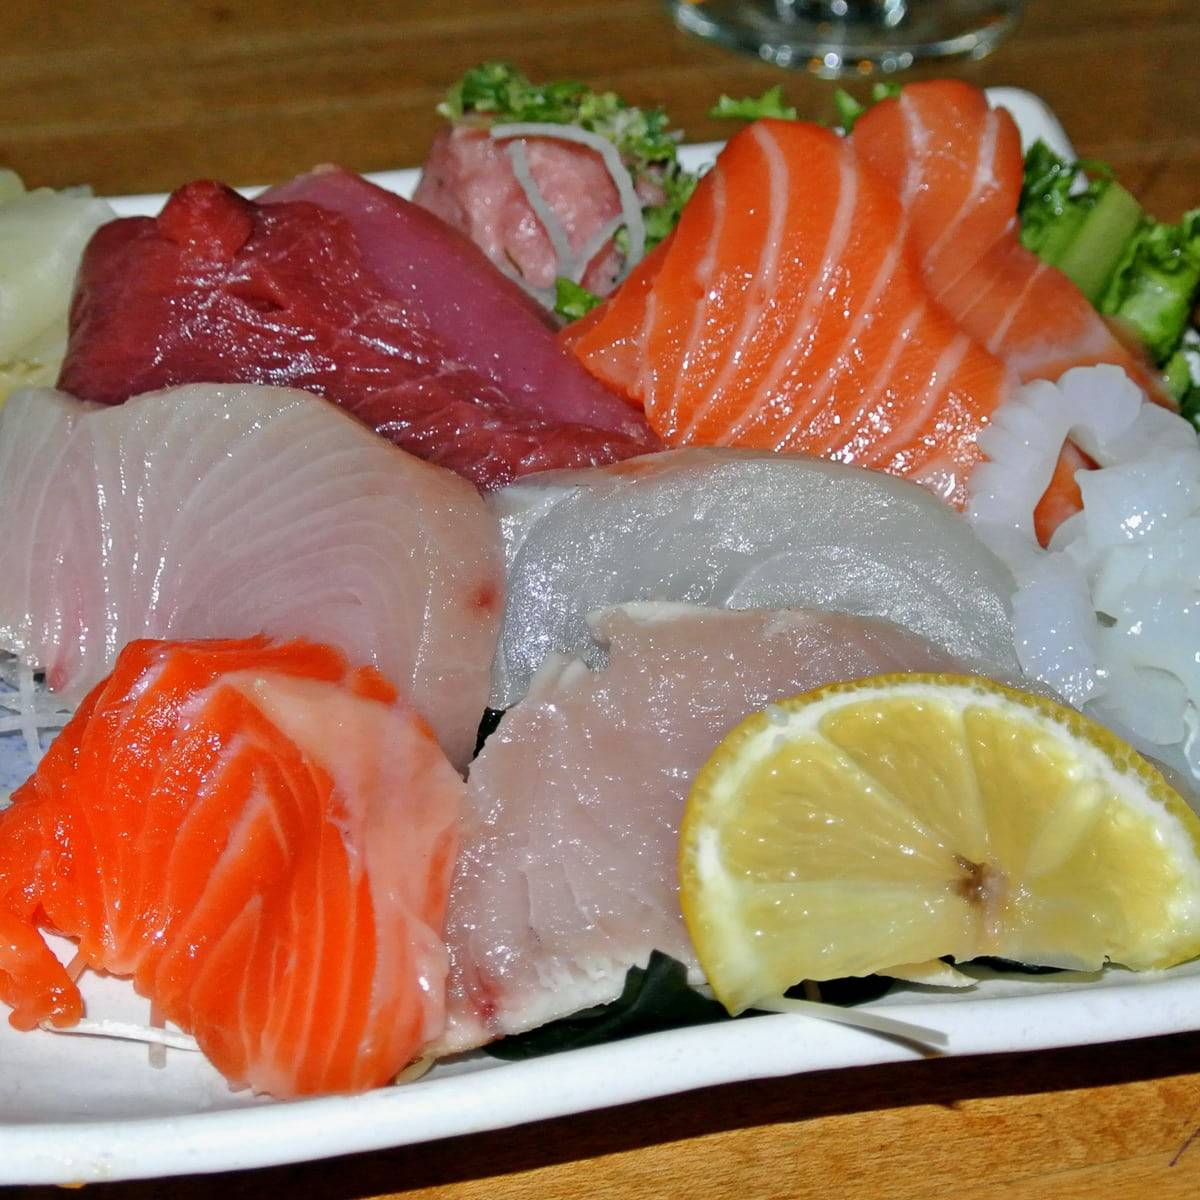 An Incredible Lunch Special with Super Fresh Sashimi at Tomoe Sushi